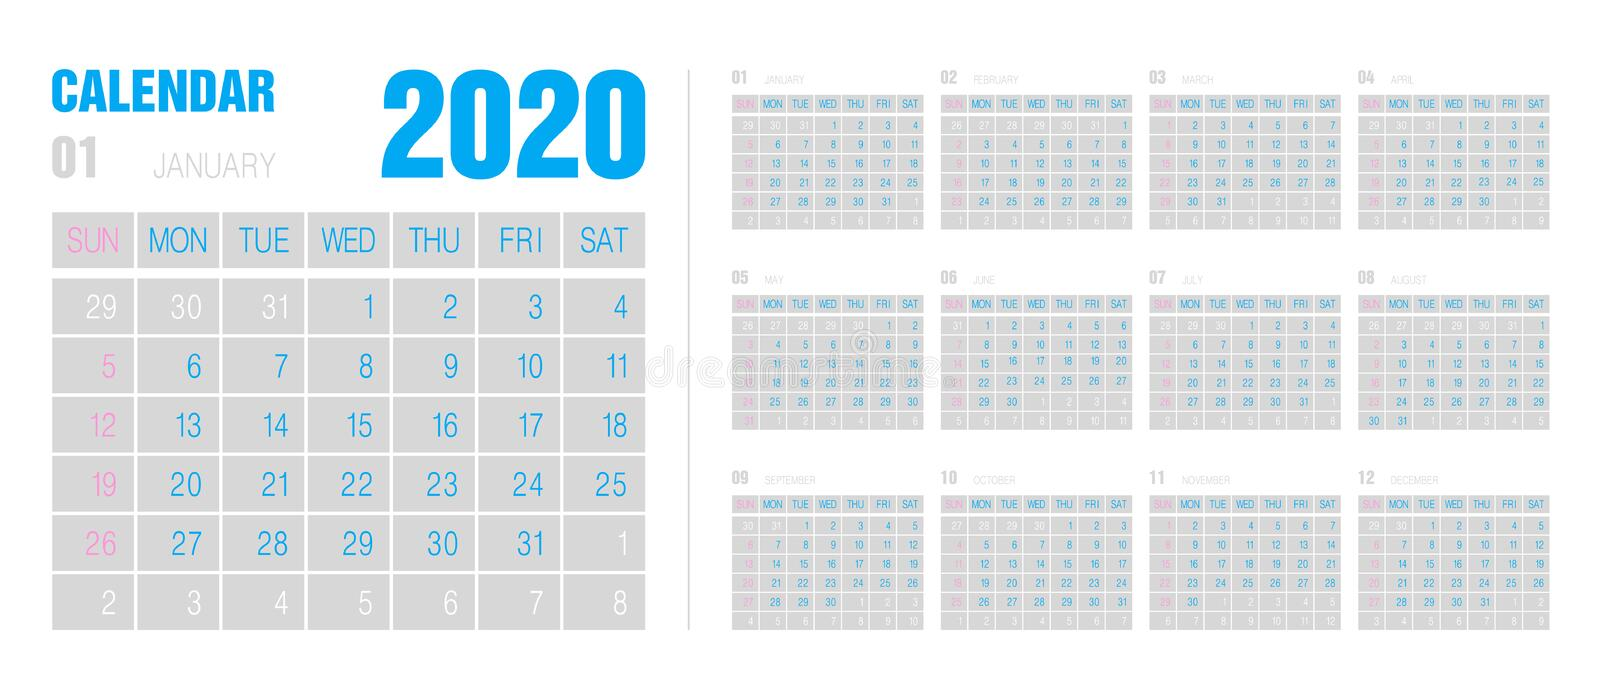 Calendar template for 2020 year. minimalist style. Corporate and business calendar. stock illustration